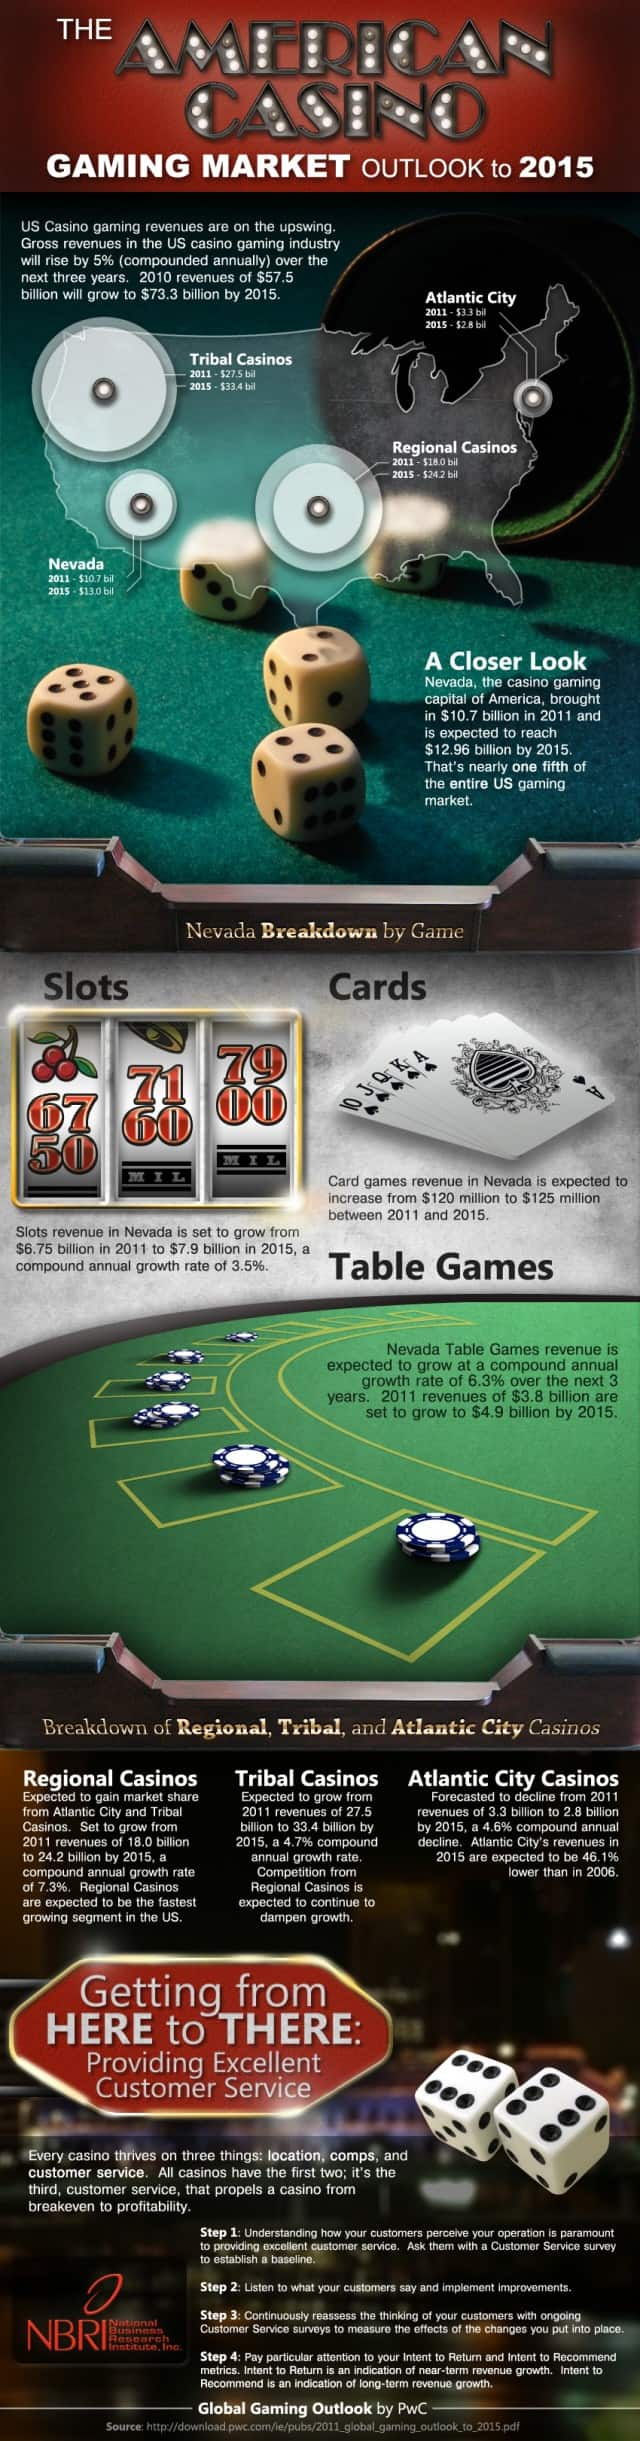 Break even gambling service horseshoe bossier casino and hotel bossier city